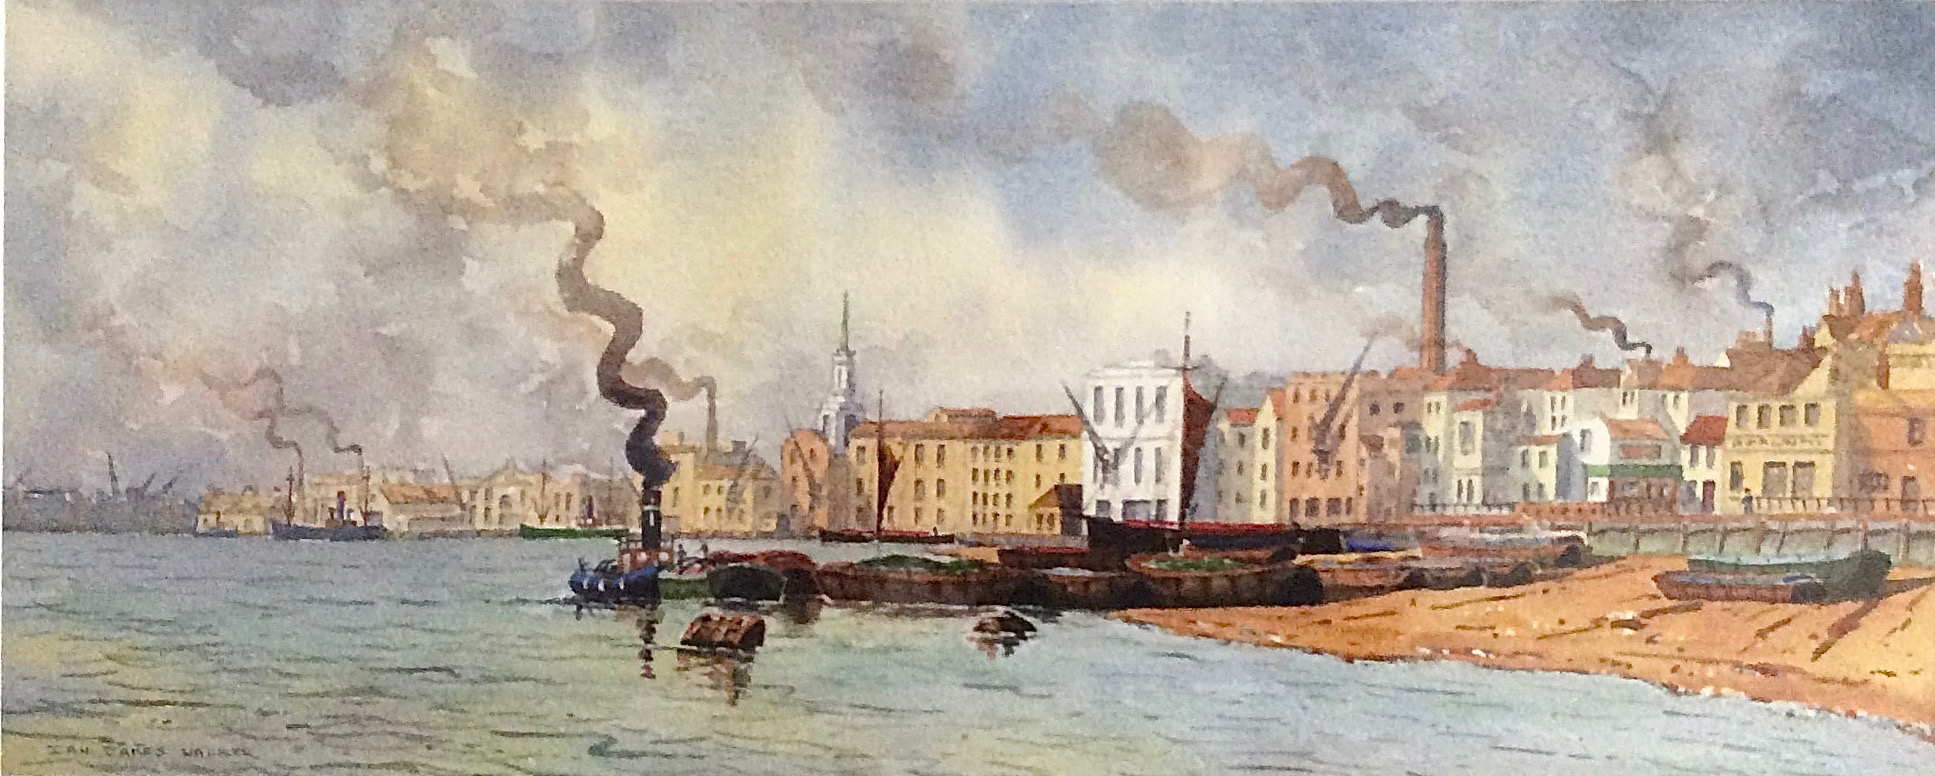 ROTHERHITHE REACH: 25 x 62 cm: watercolour